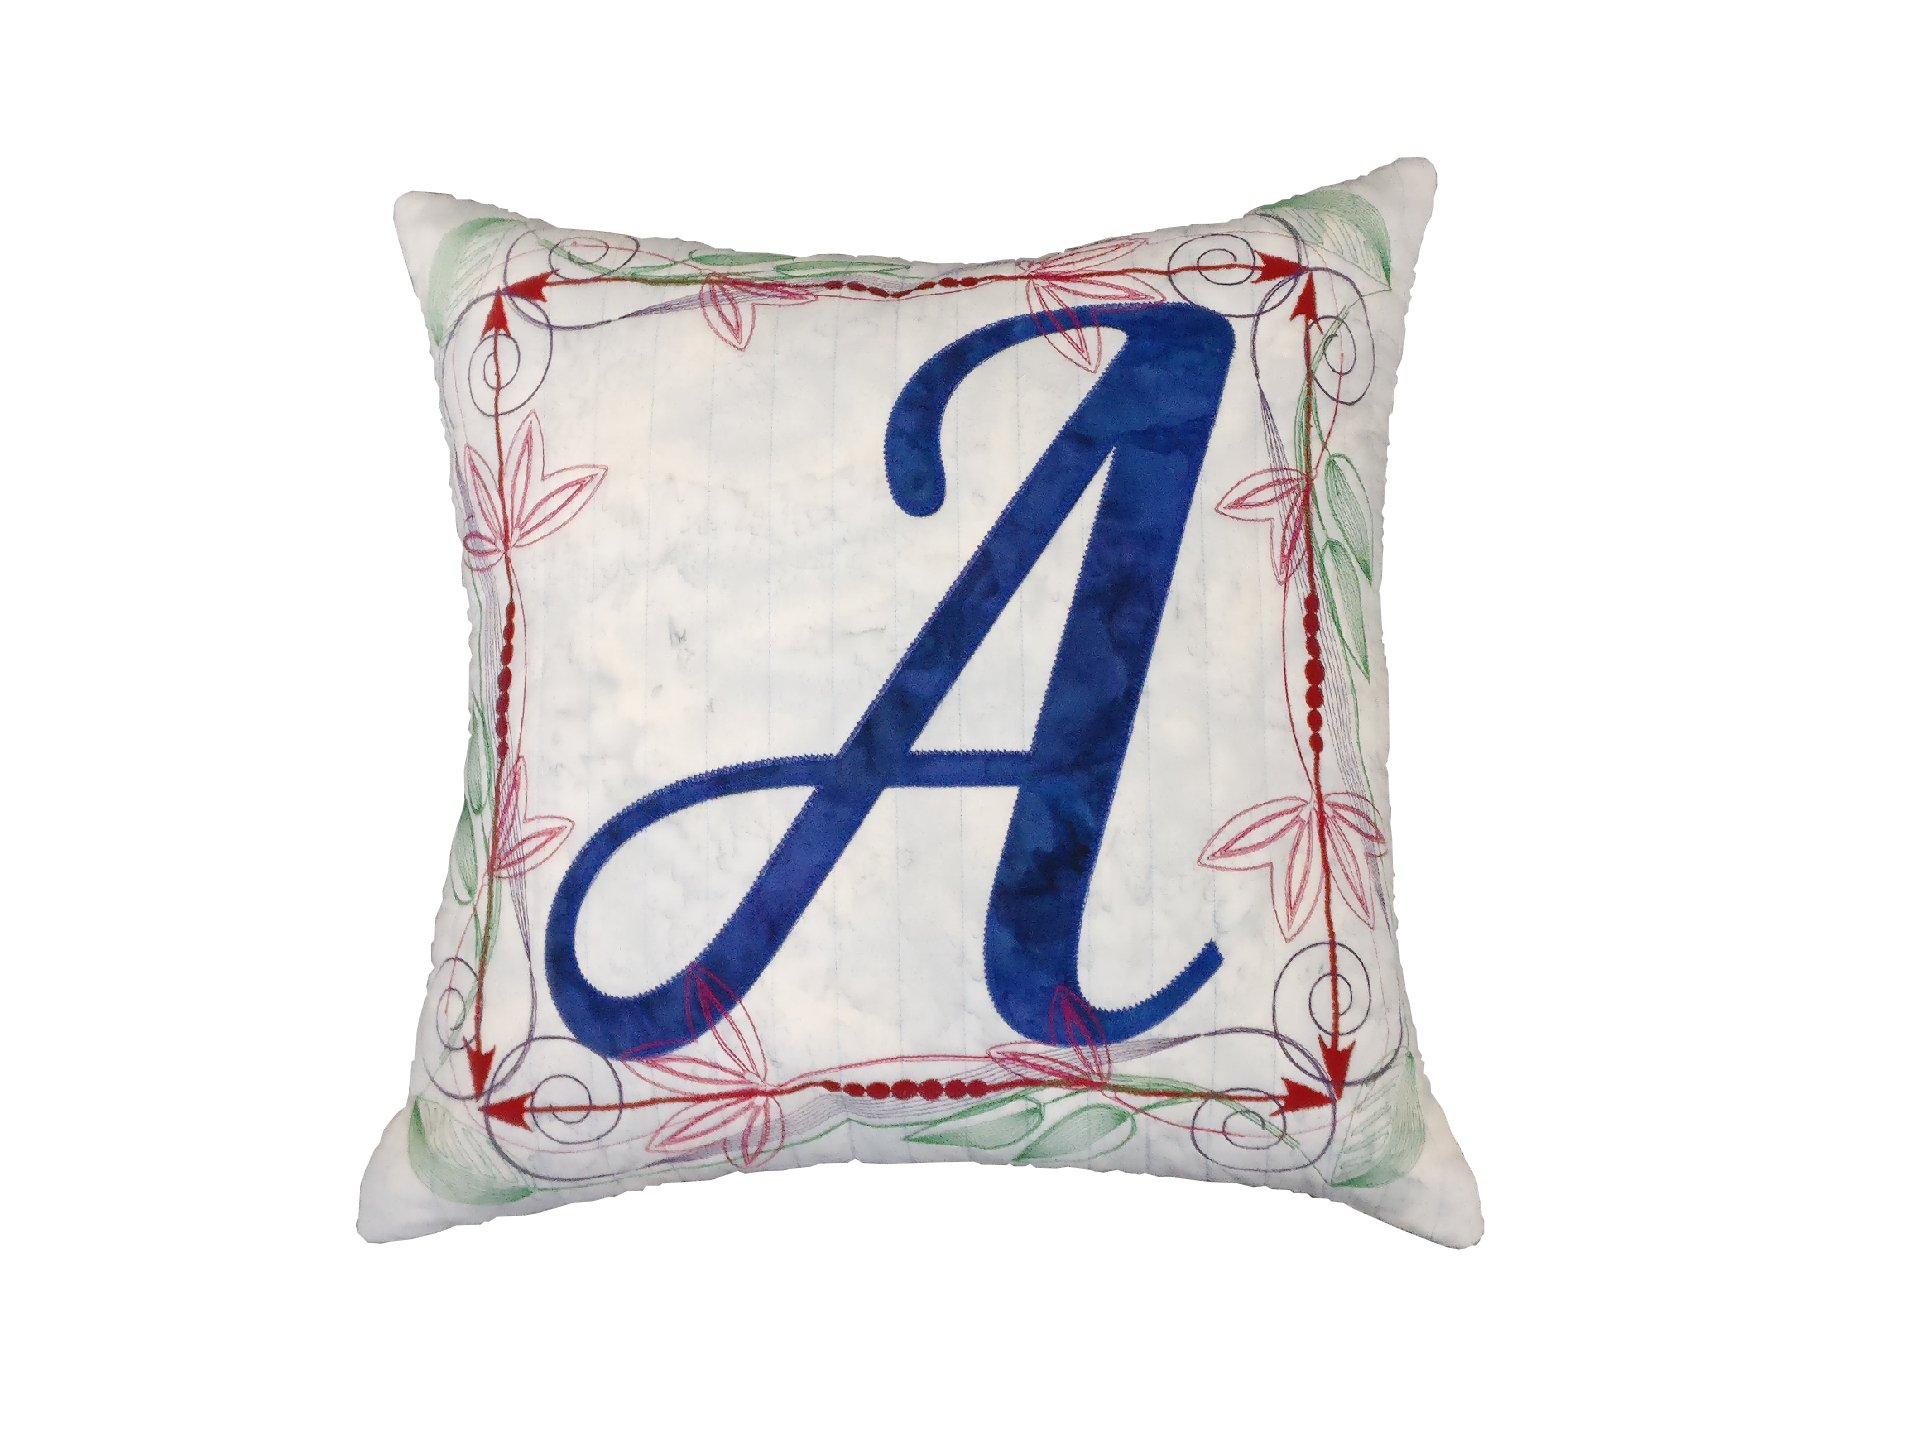 JBKGA Monogram Pillow Quilting and Embroidery Patterns